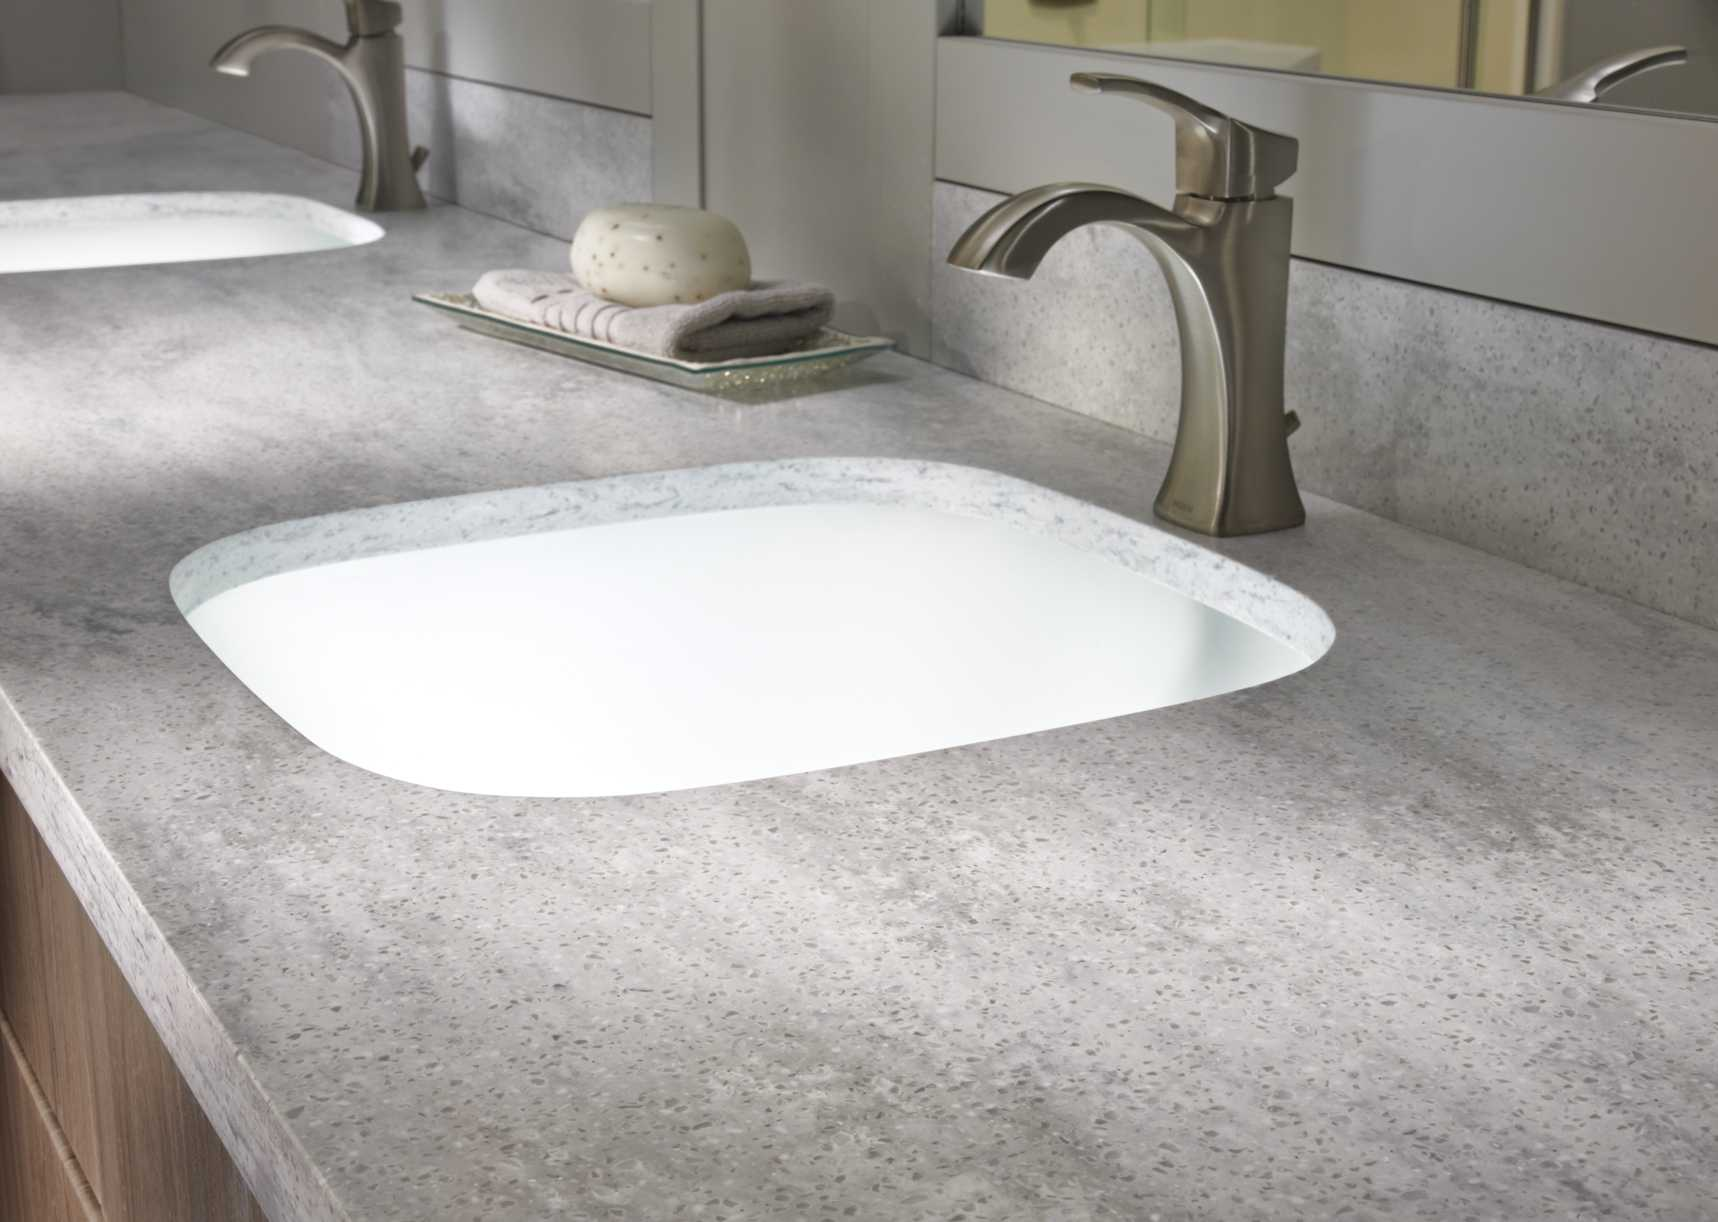 Private collection ohio valley supply company - Corian material ...